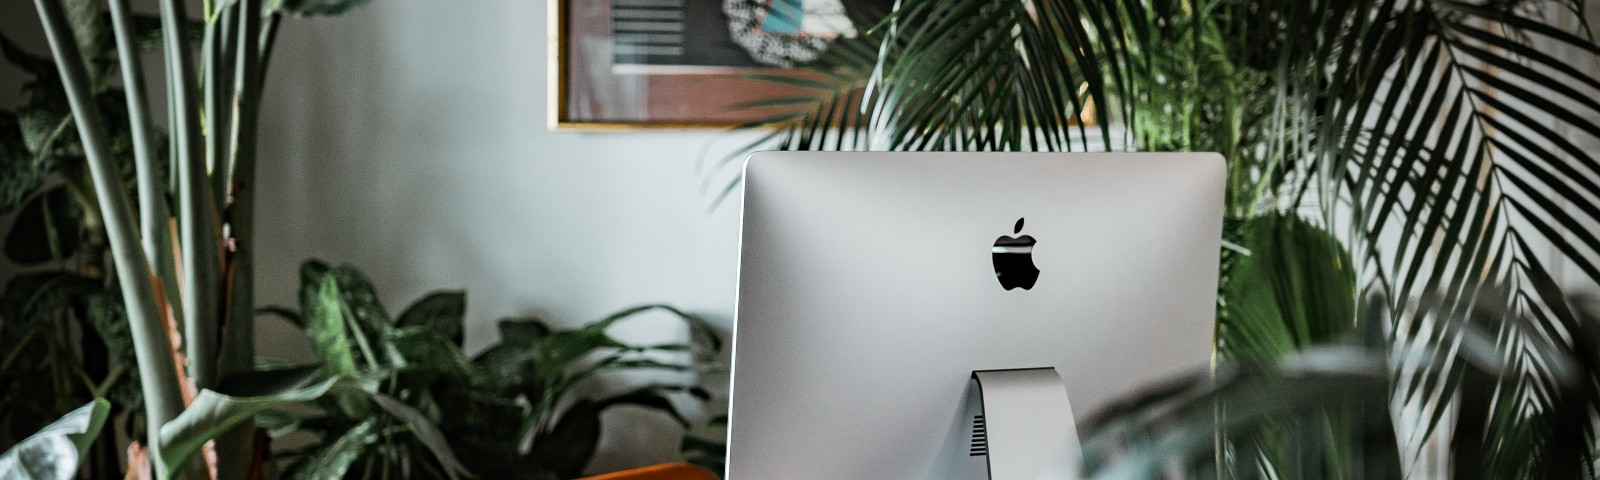 Mac computer on a desk surrounded by houseplants